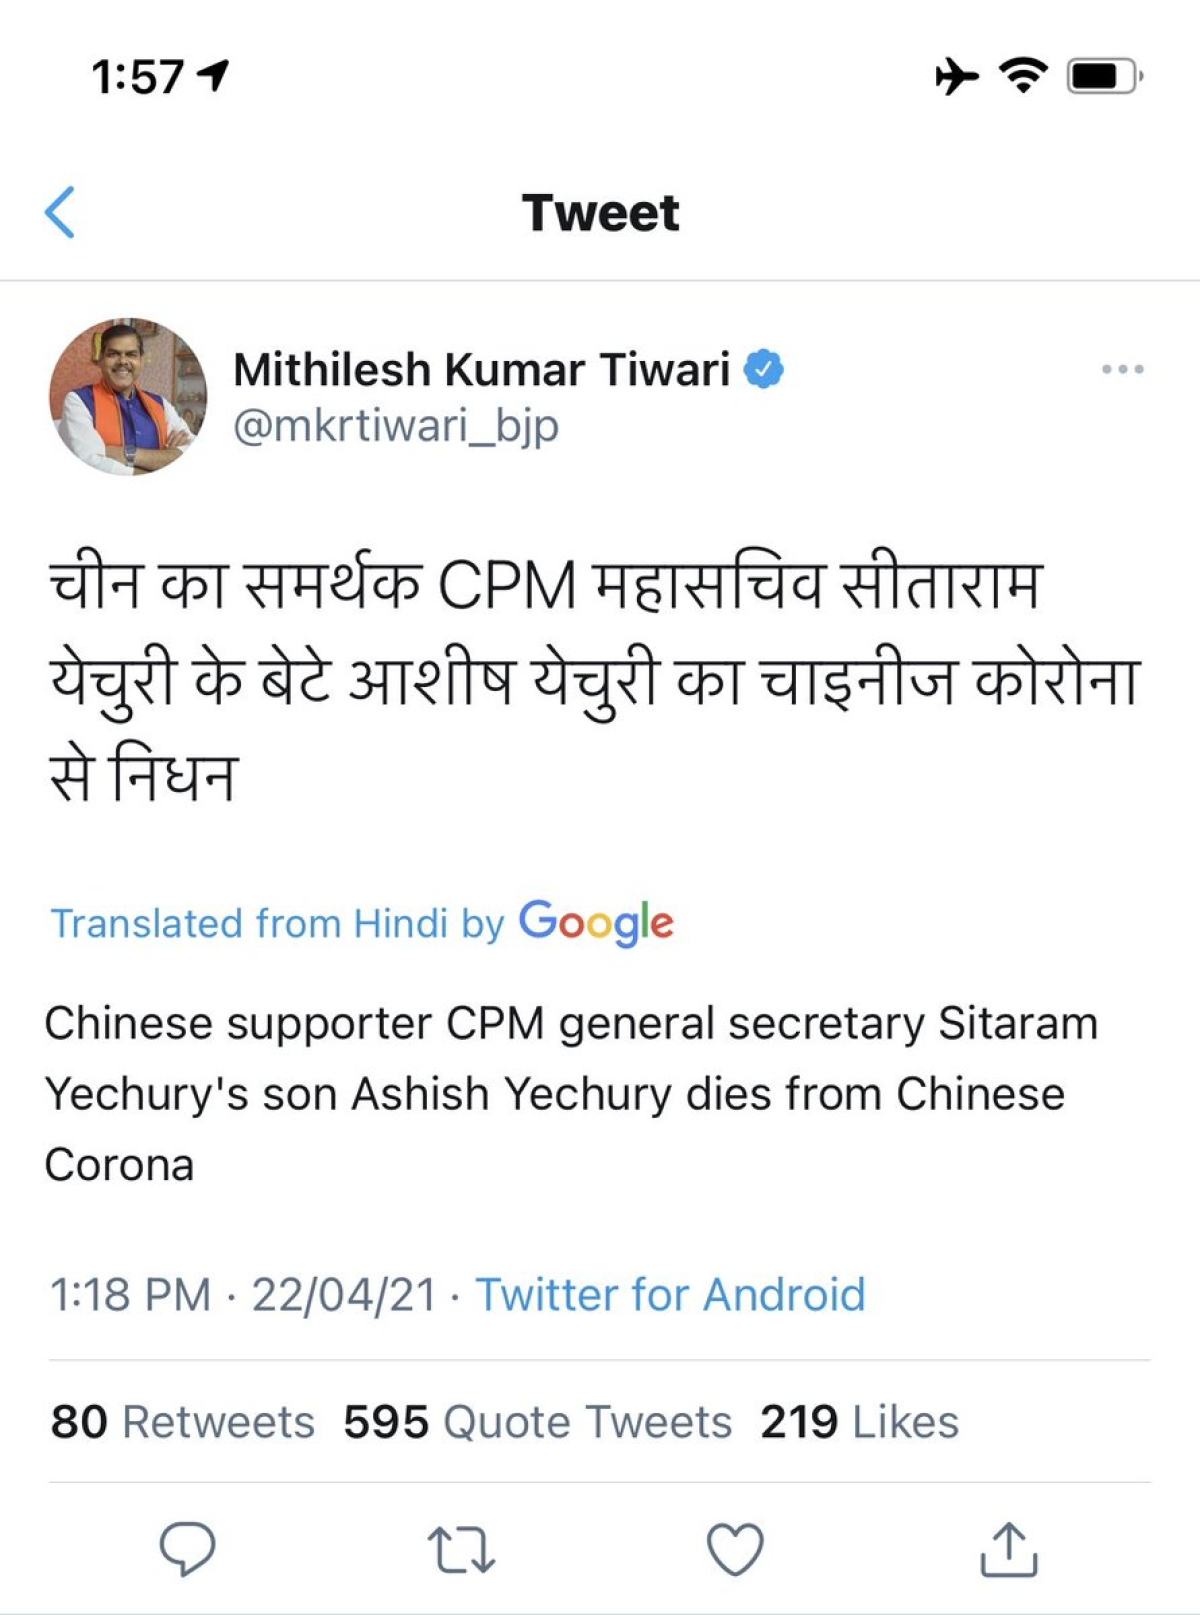 BJP leader Mithilesh Kumar Tiwari shamed for insensitive tweet on Ashish Yechury's demise